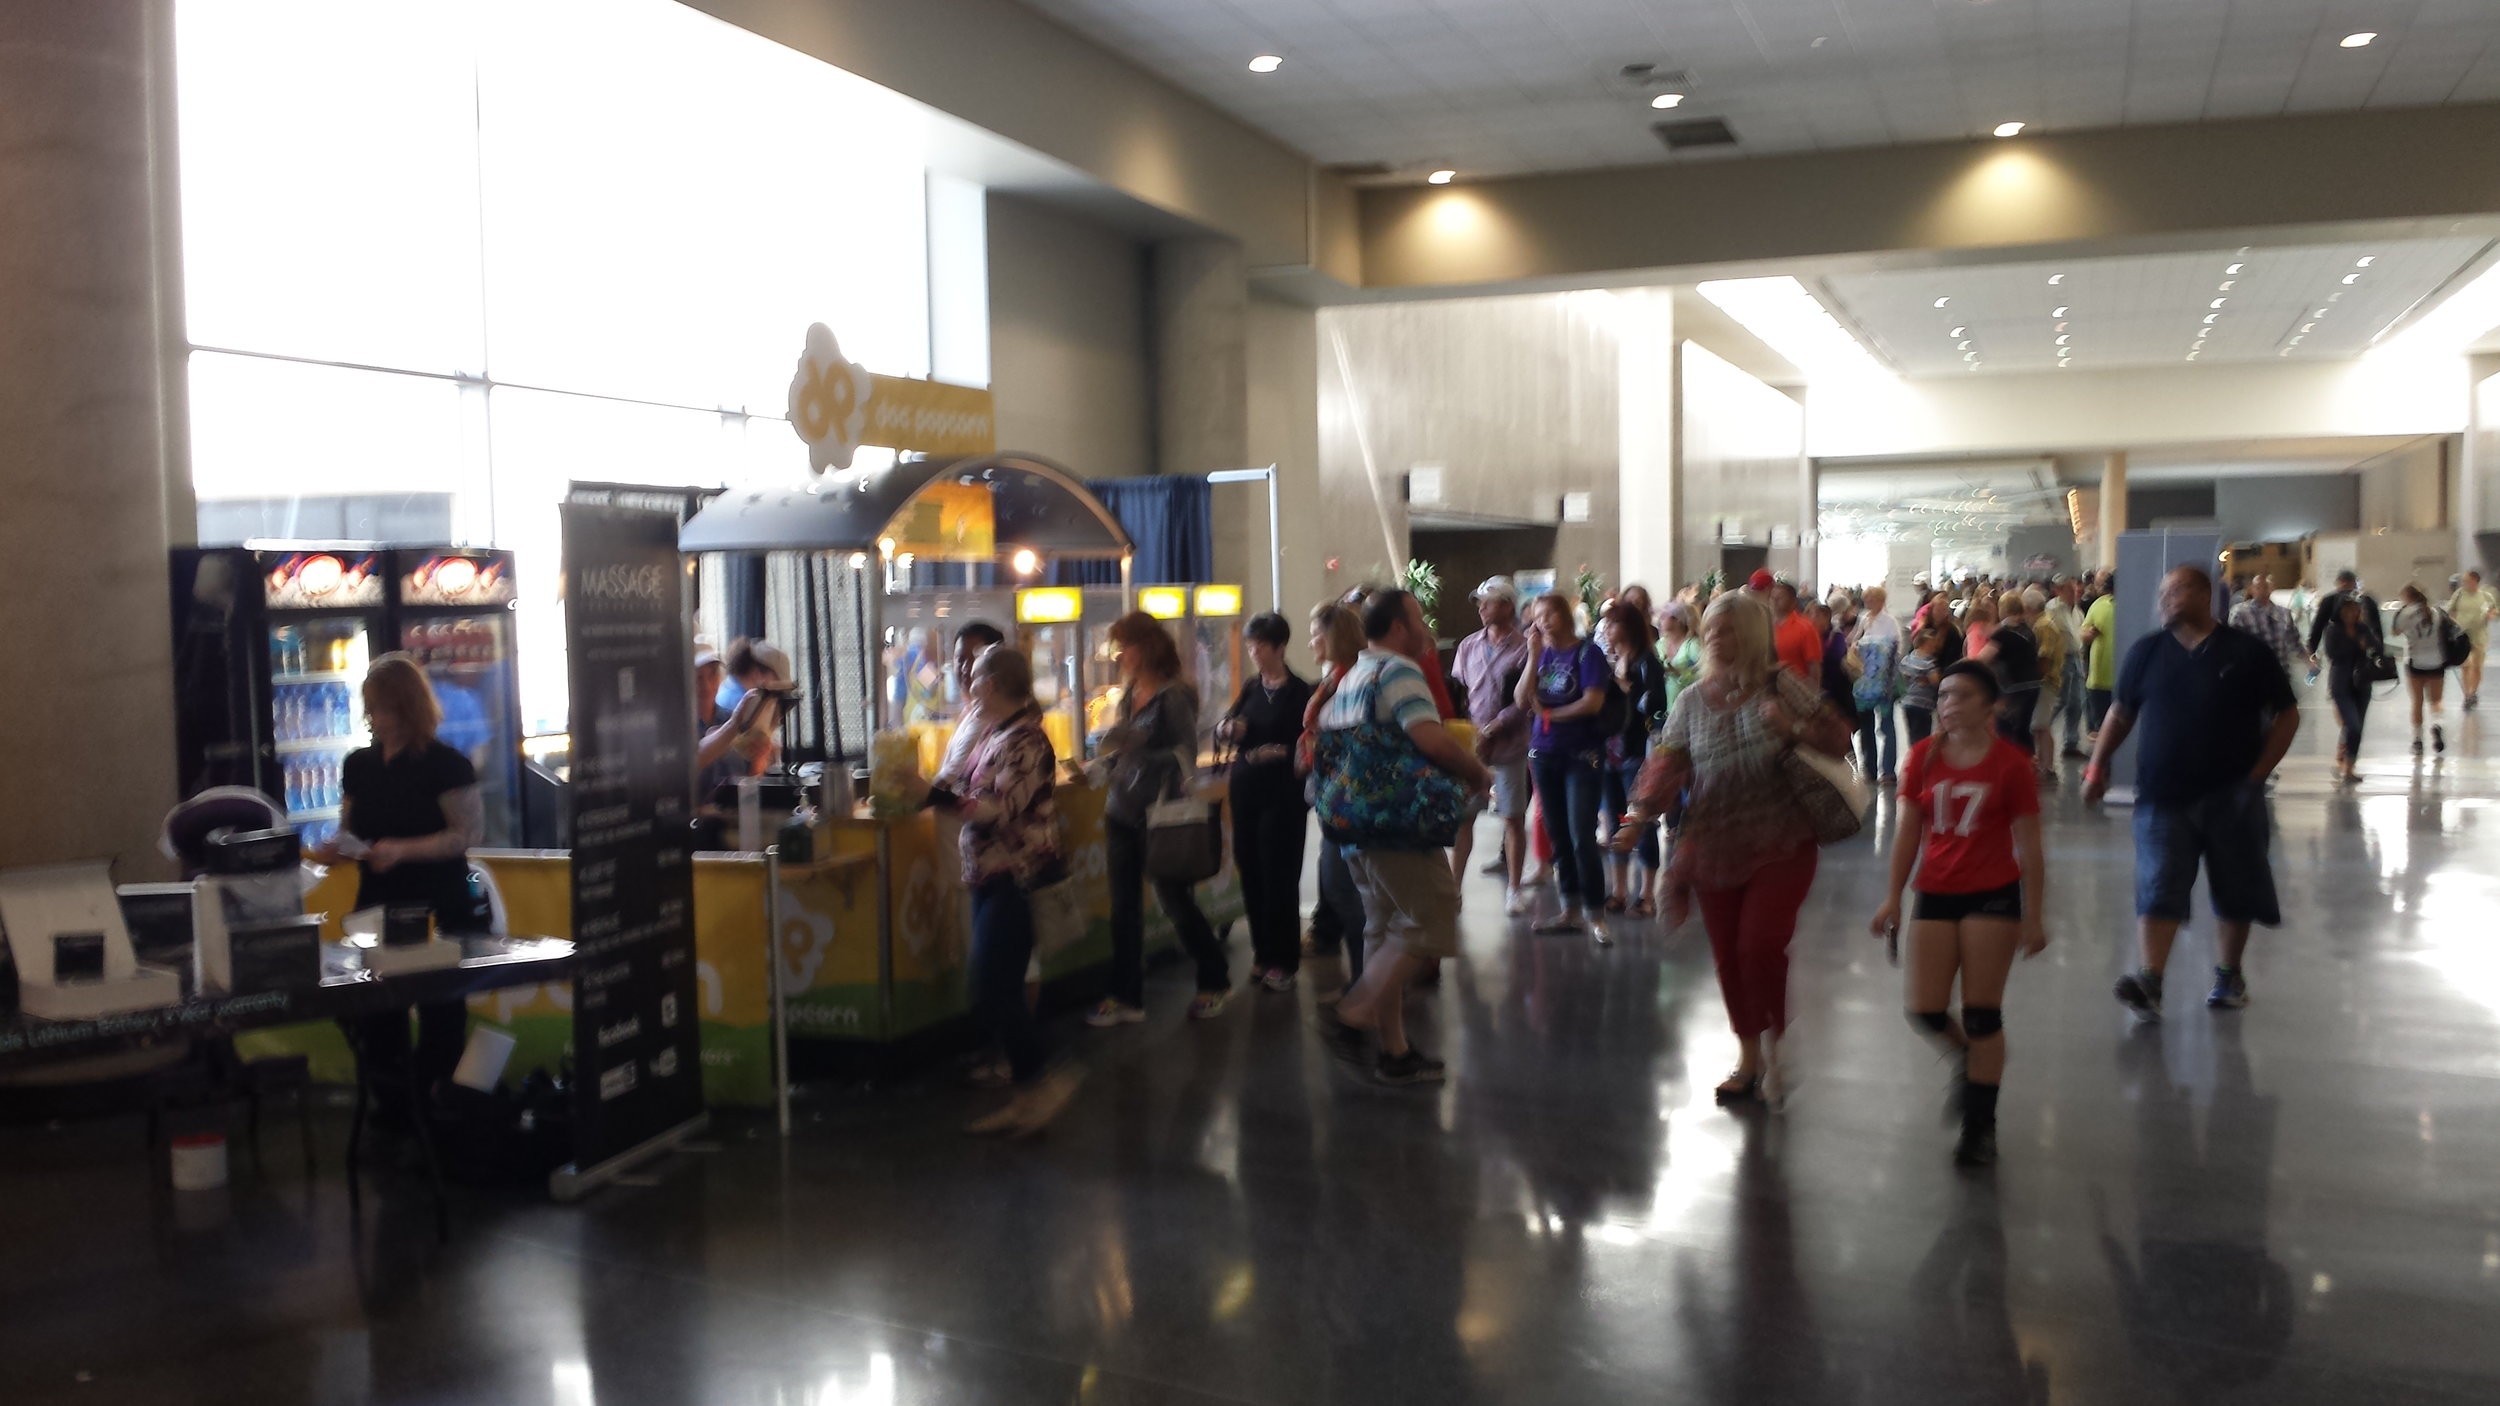 LSC Volleyball players lining up for Doc Popcorn